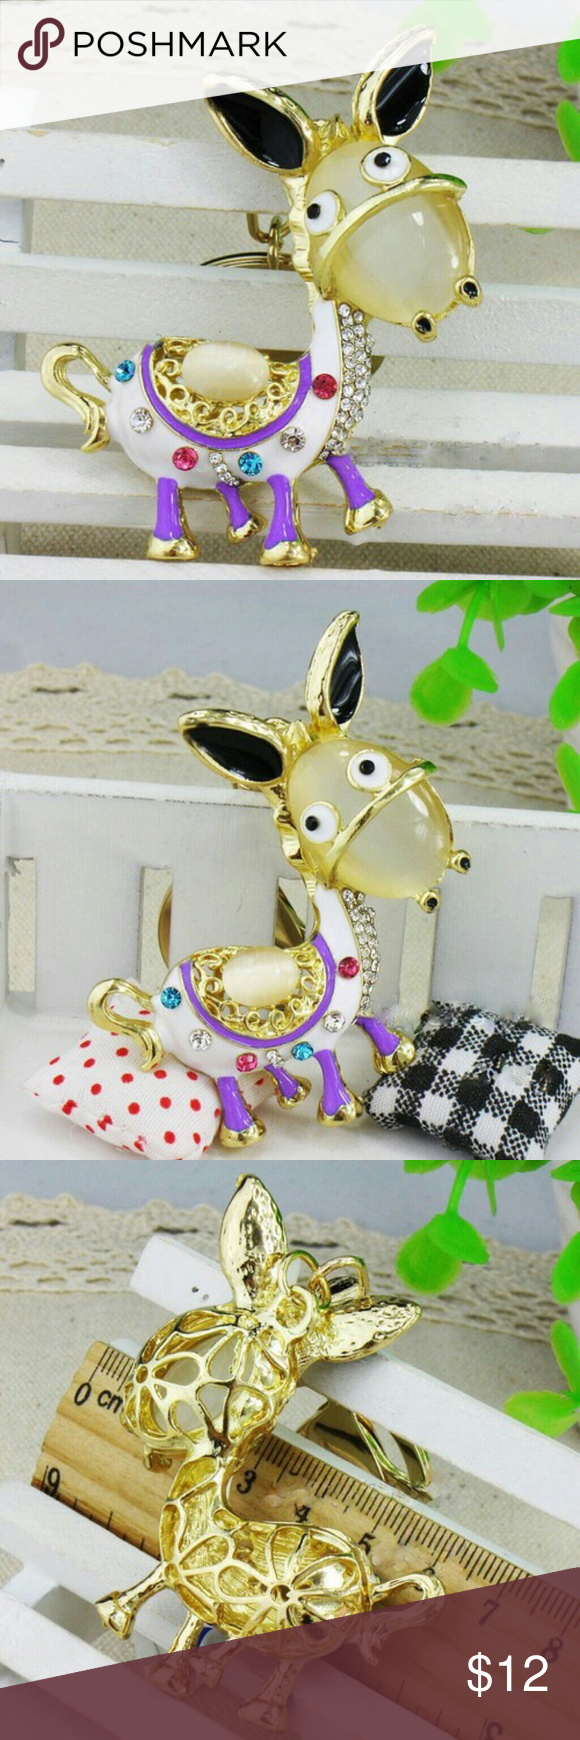 Dominic Donkey rhinestone keychain purse fob. New in it's